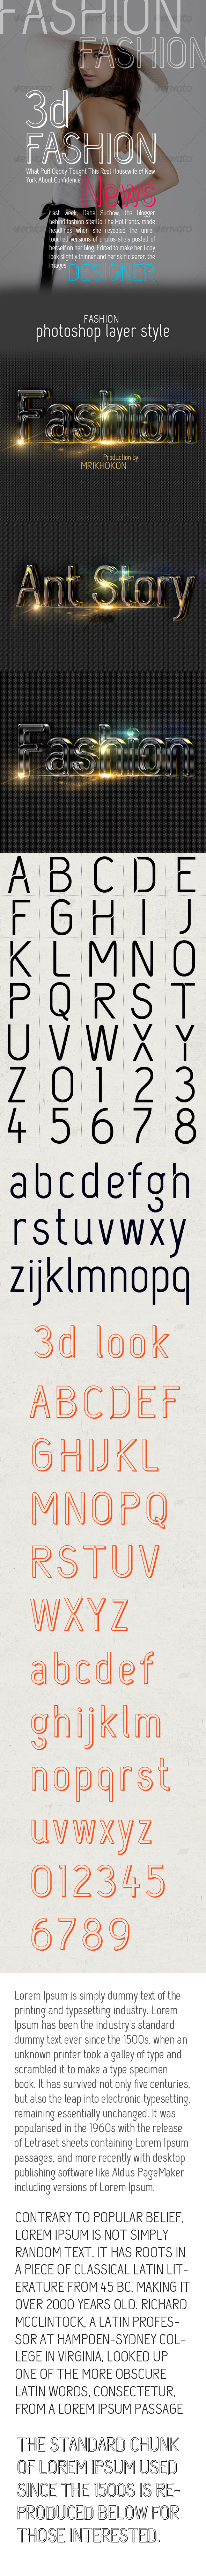 Fashion Font - Decorative Fonts